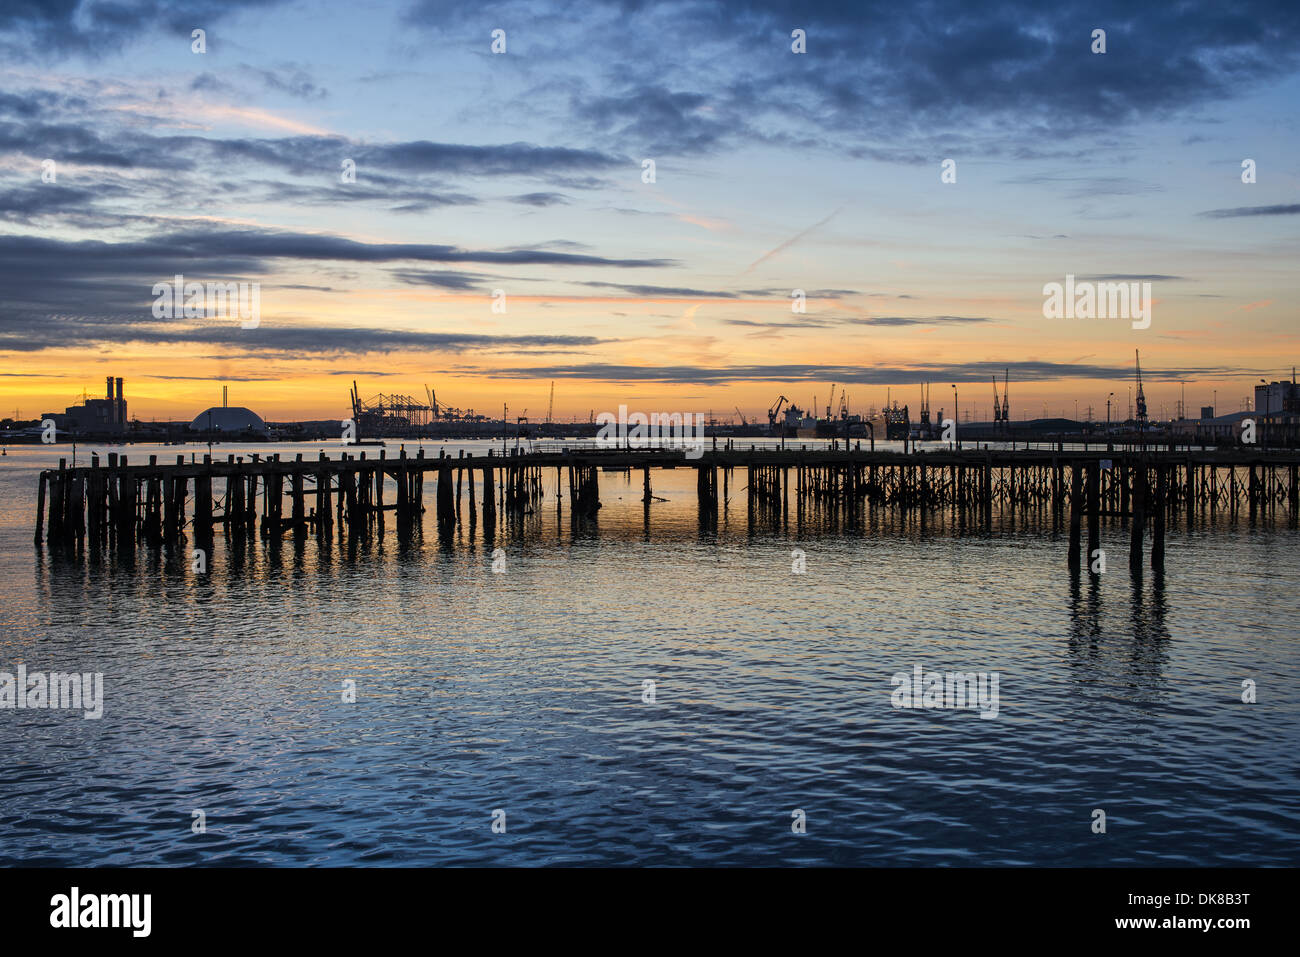 Silhouette of the remains of the old Royal Pier against a beautiful sunset over Southampton docks in Hampshire, England, UK - Stock Image